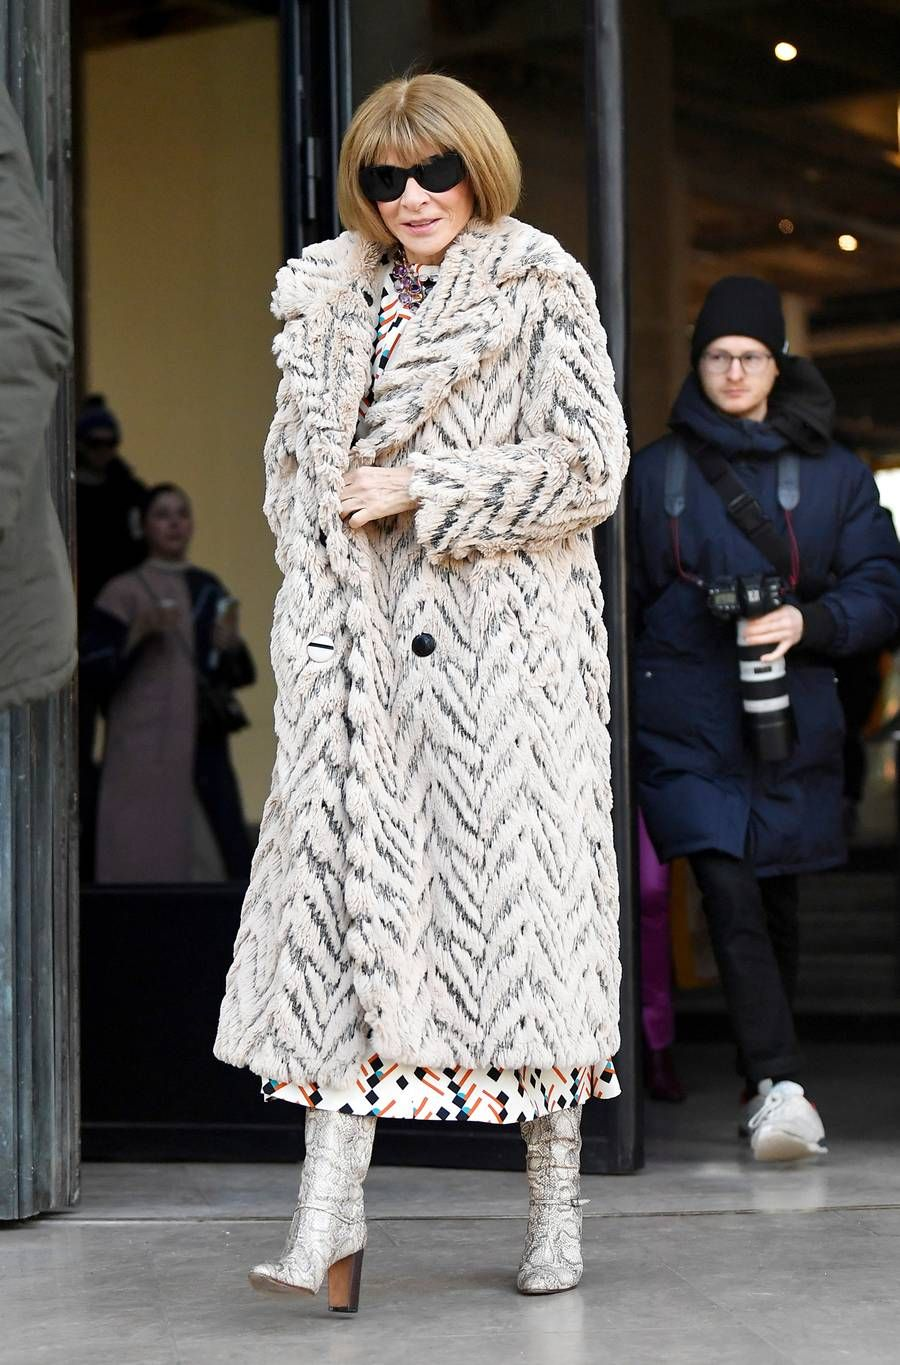 Anna Wintour's Capsule Wardrobe She Always Packs for Paris | Who What Wear